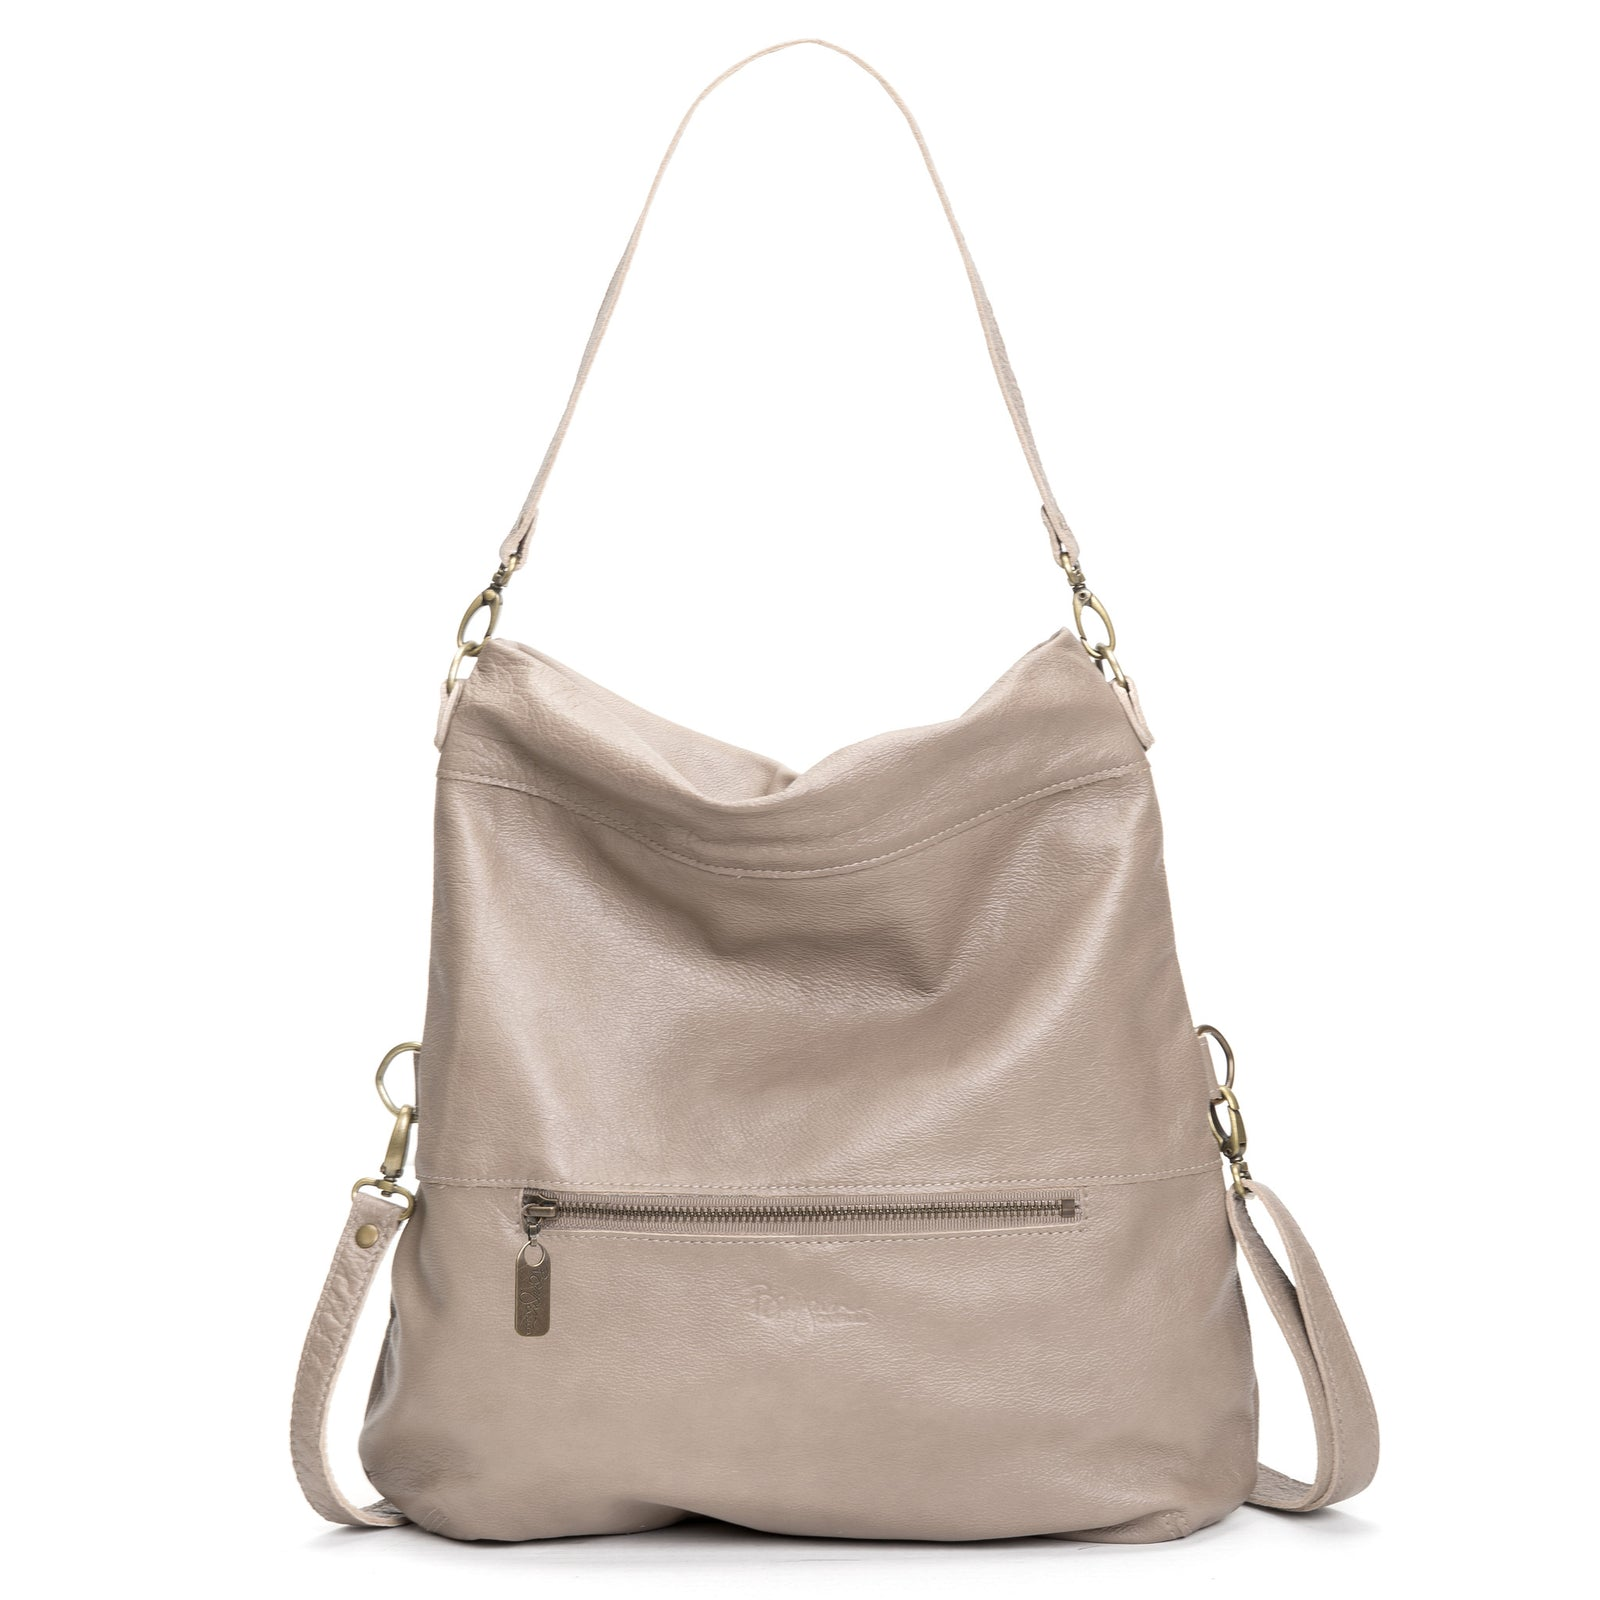 Mini-Lauren Crossbody - Sahara - Brynn Capella, Medium Crossbody